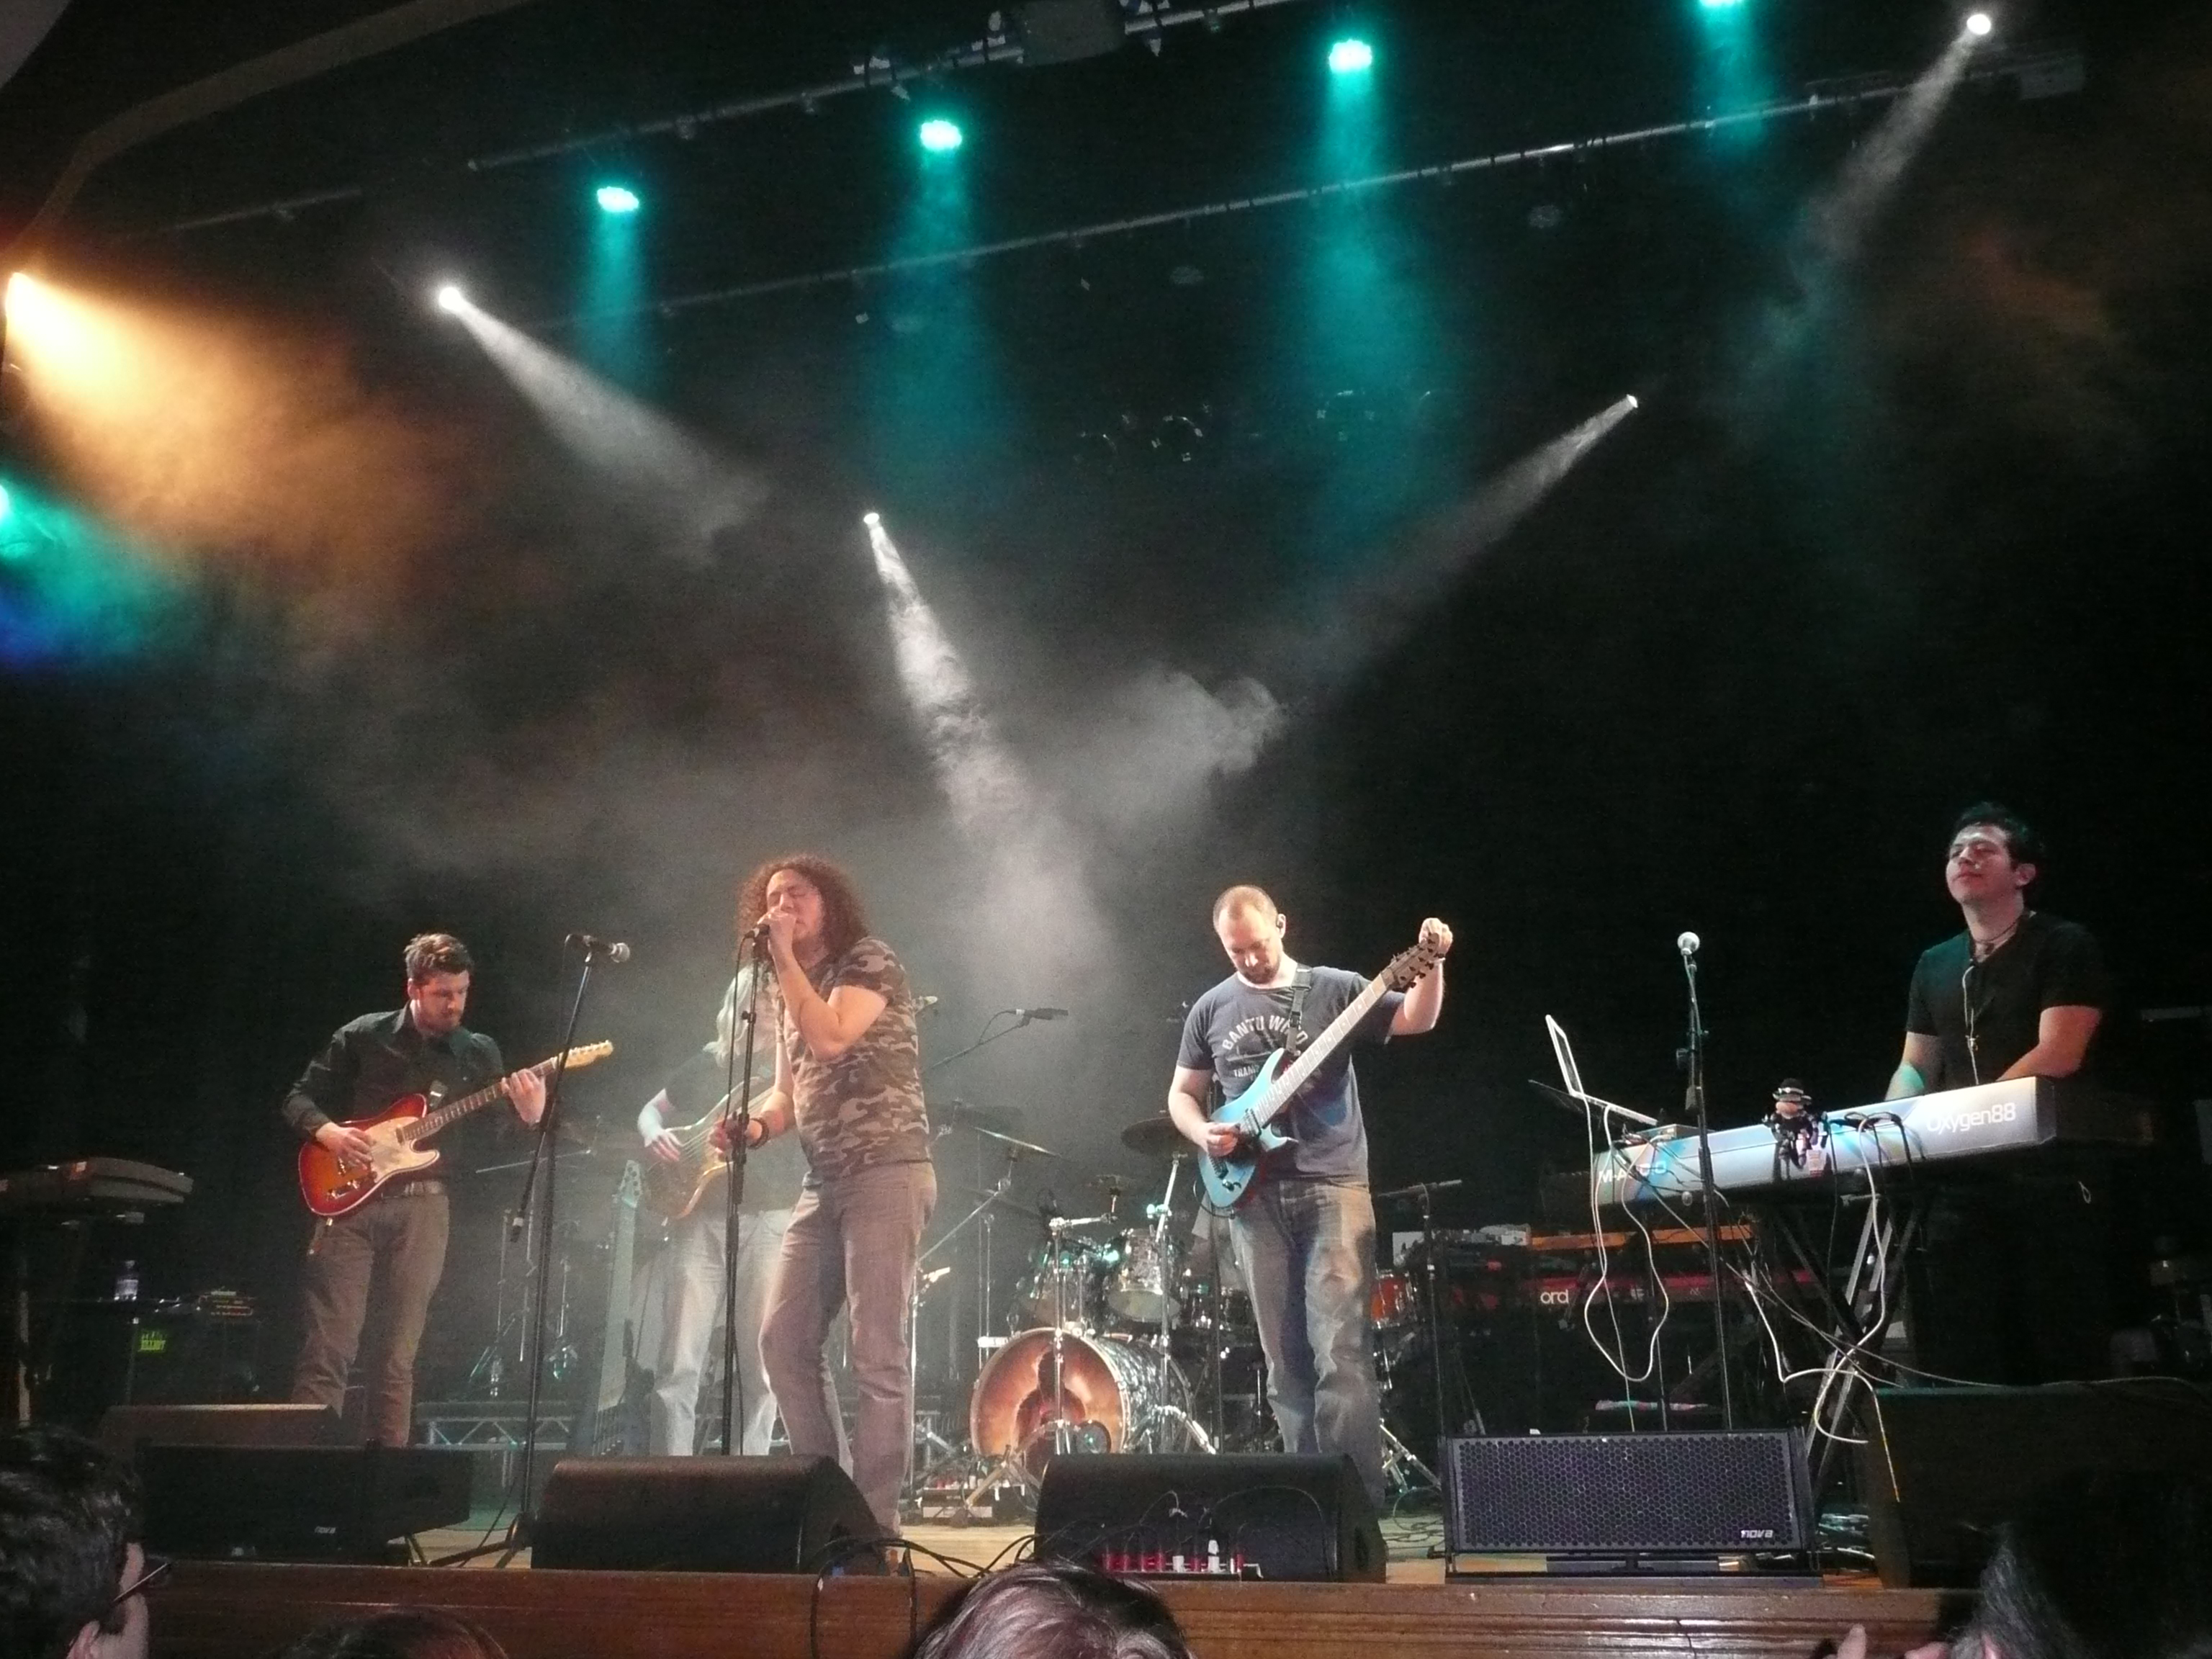 An Evening With Haken A Live Review